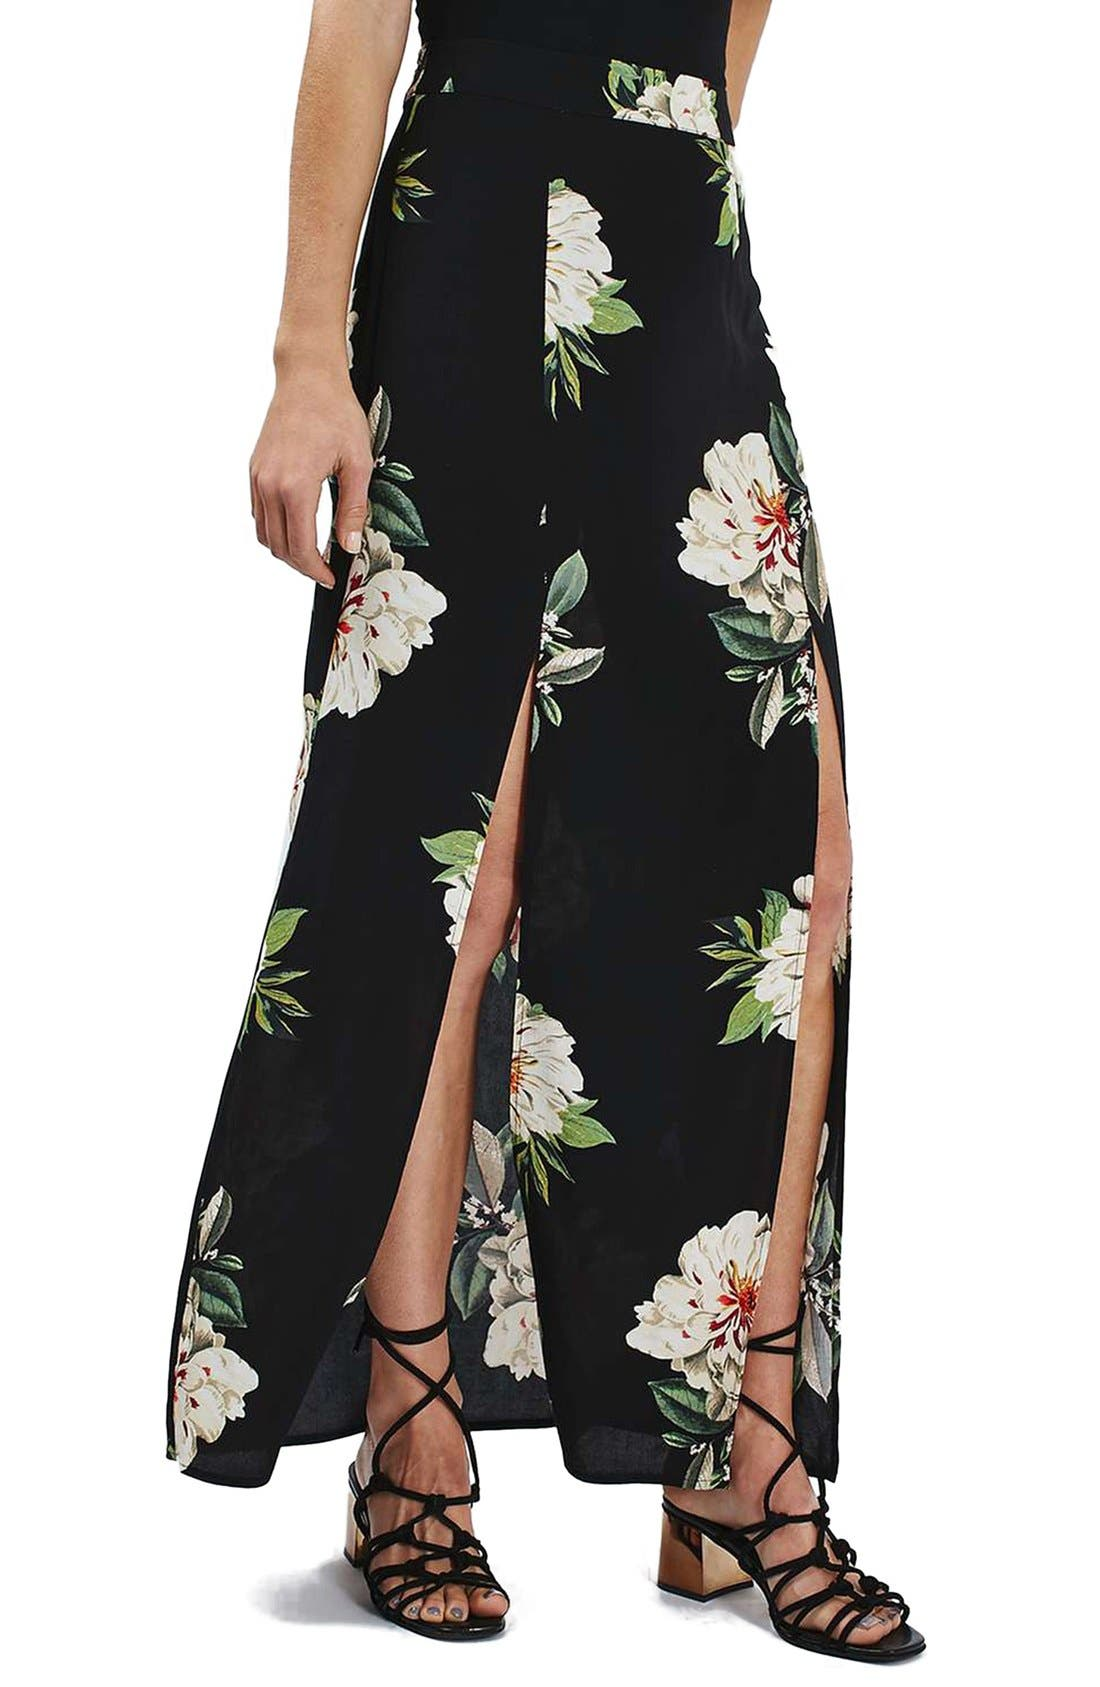 Alternate Image 1 Selected - Topshop Floral Print Maxi Skirt